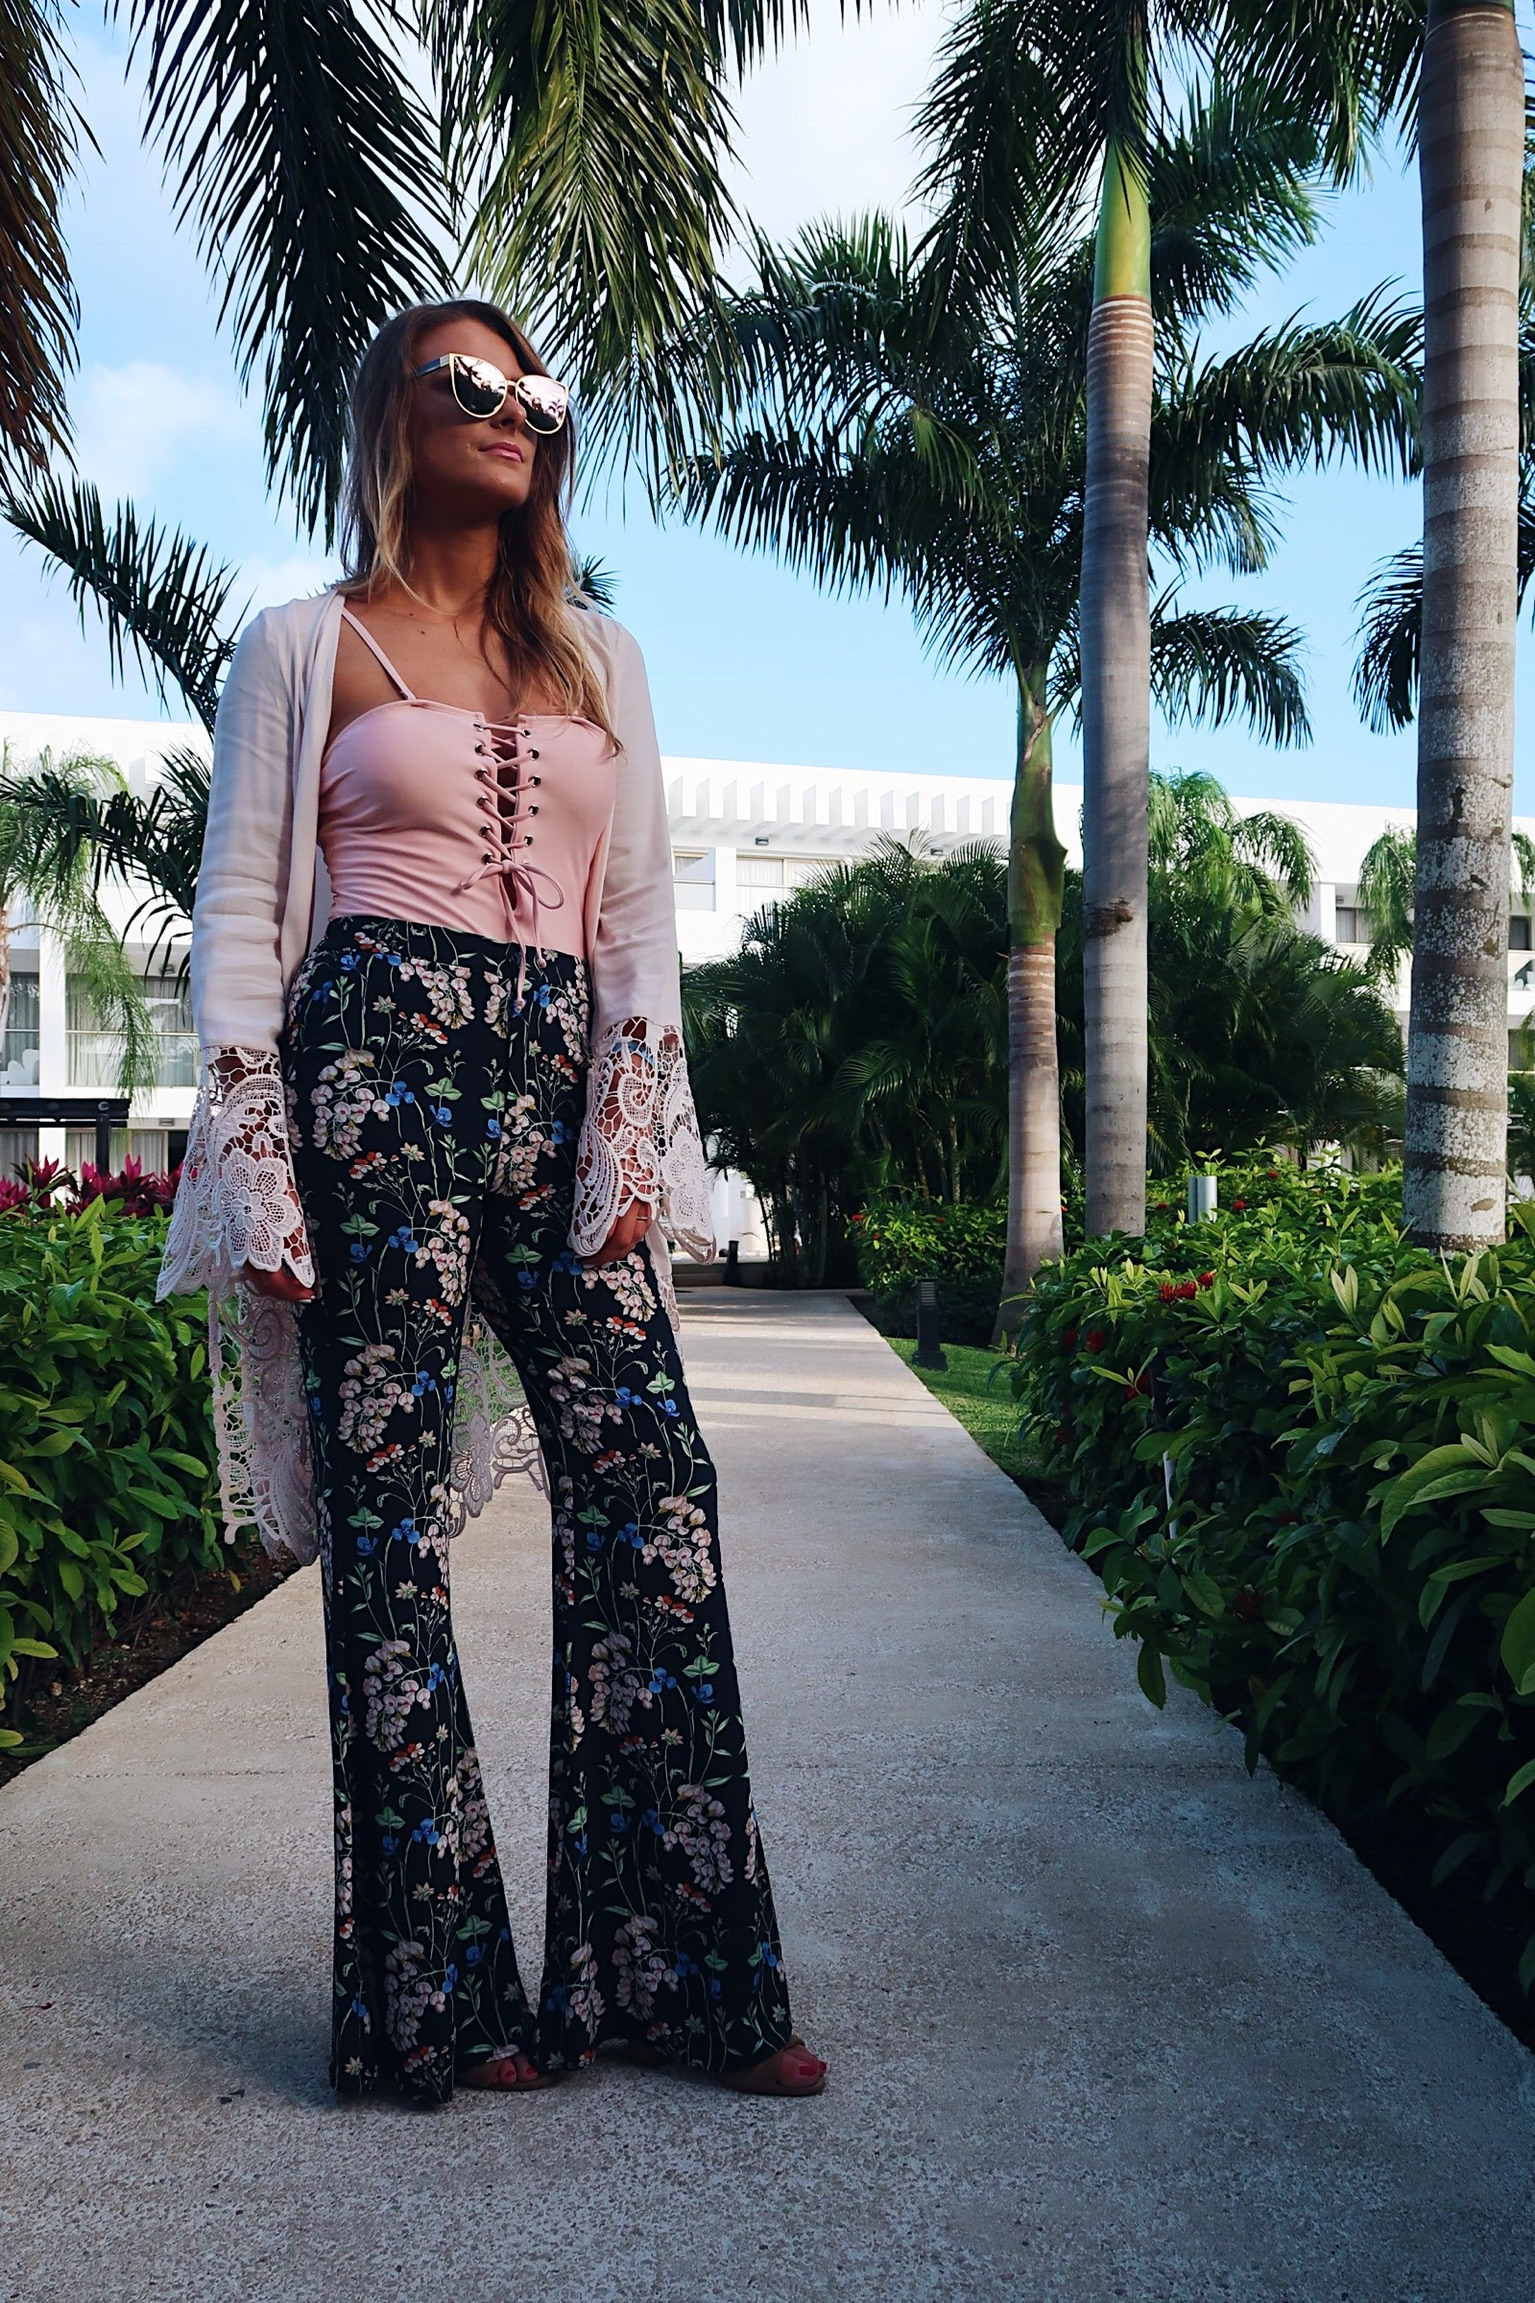 life with aco, Amanda conquer, floral pants, vacation outfit ideas